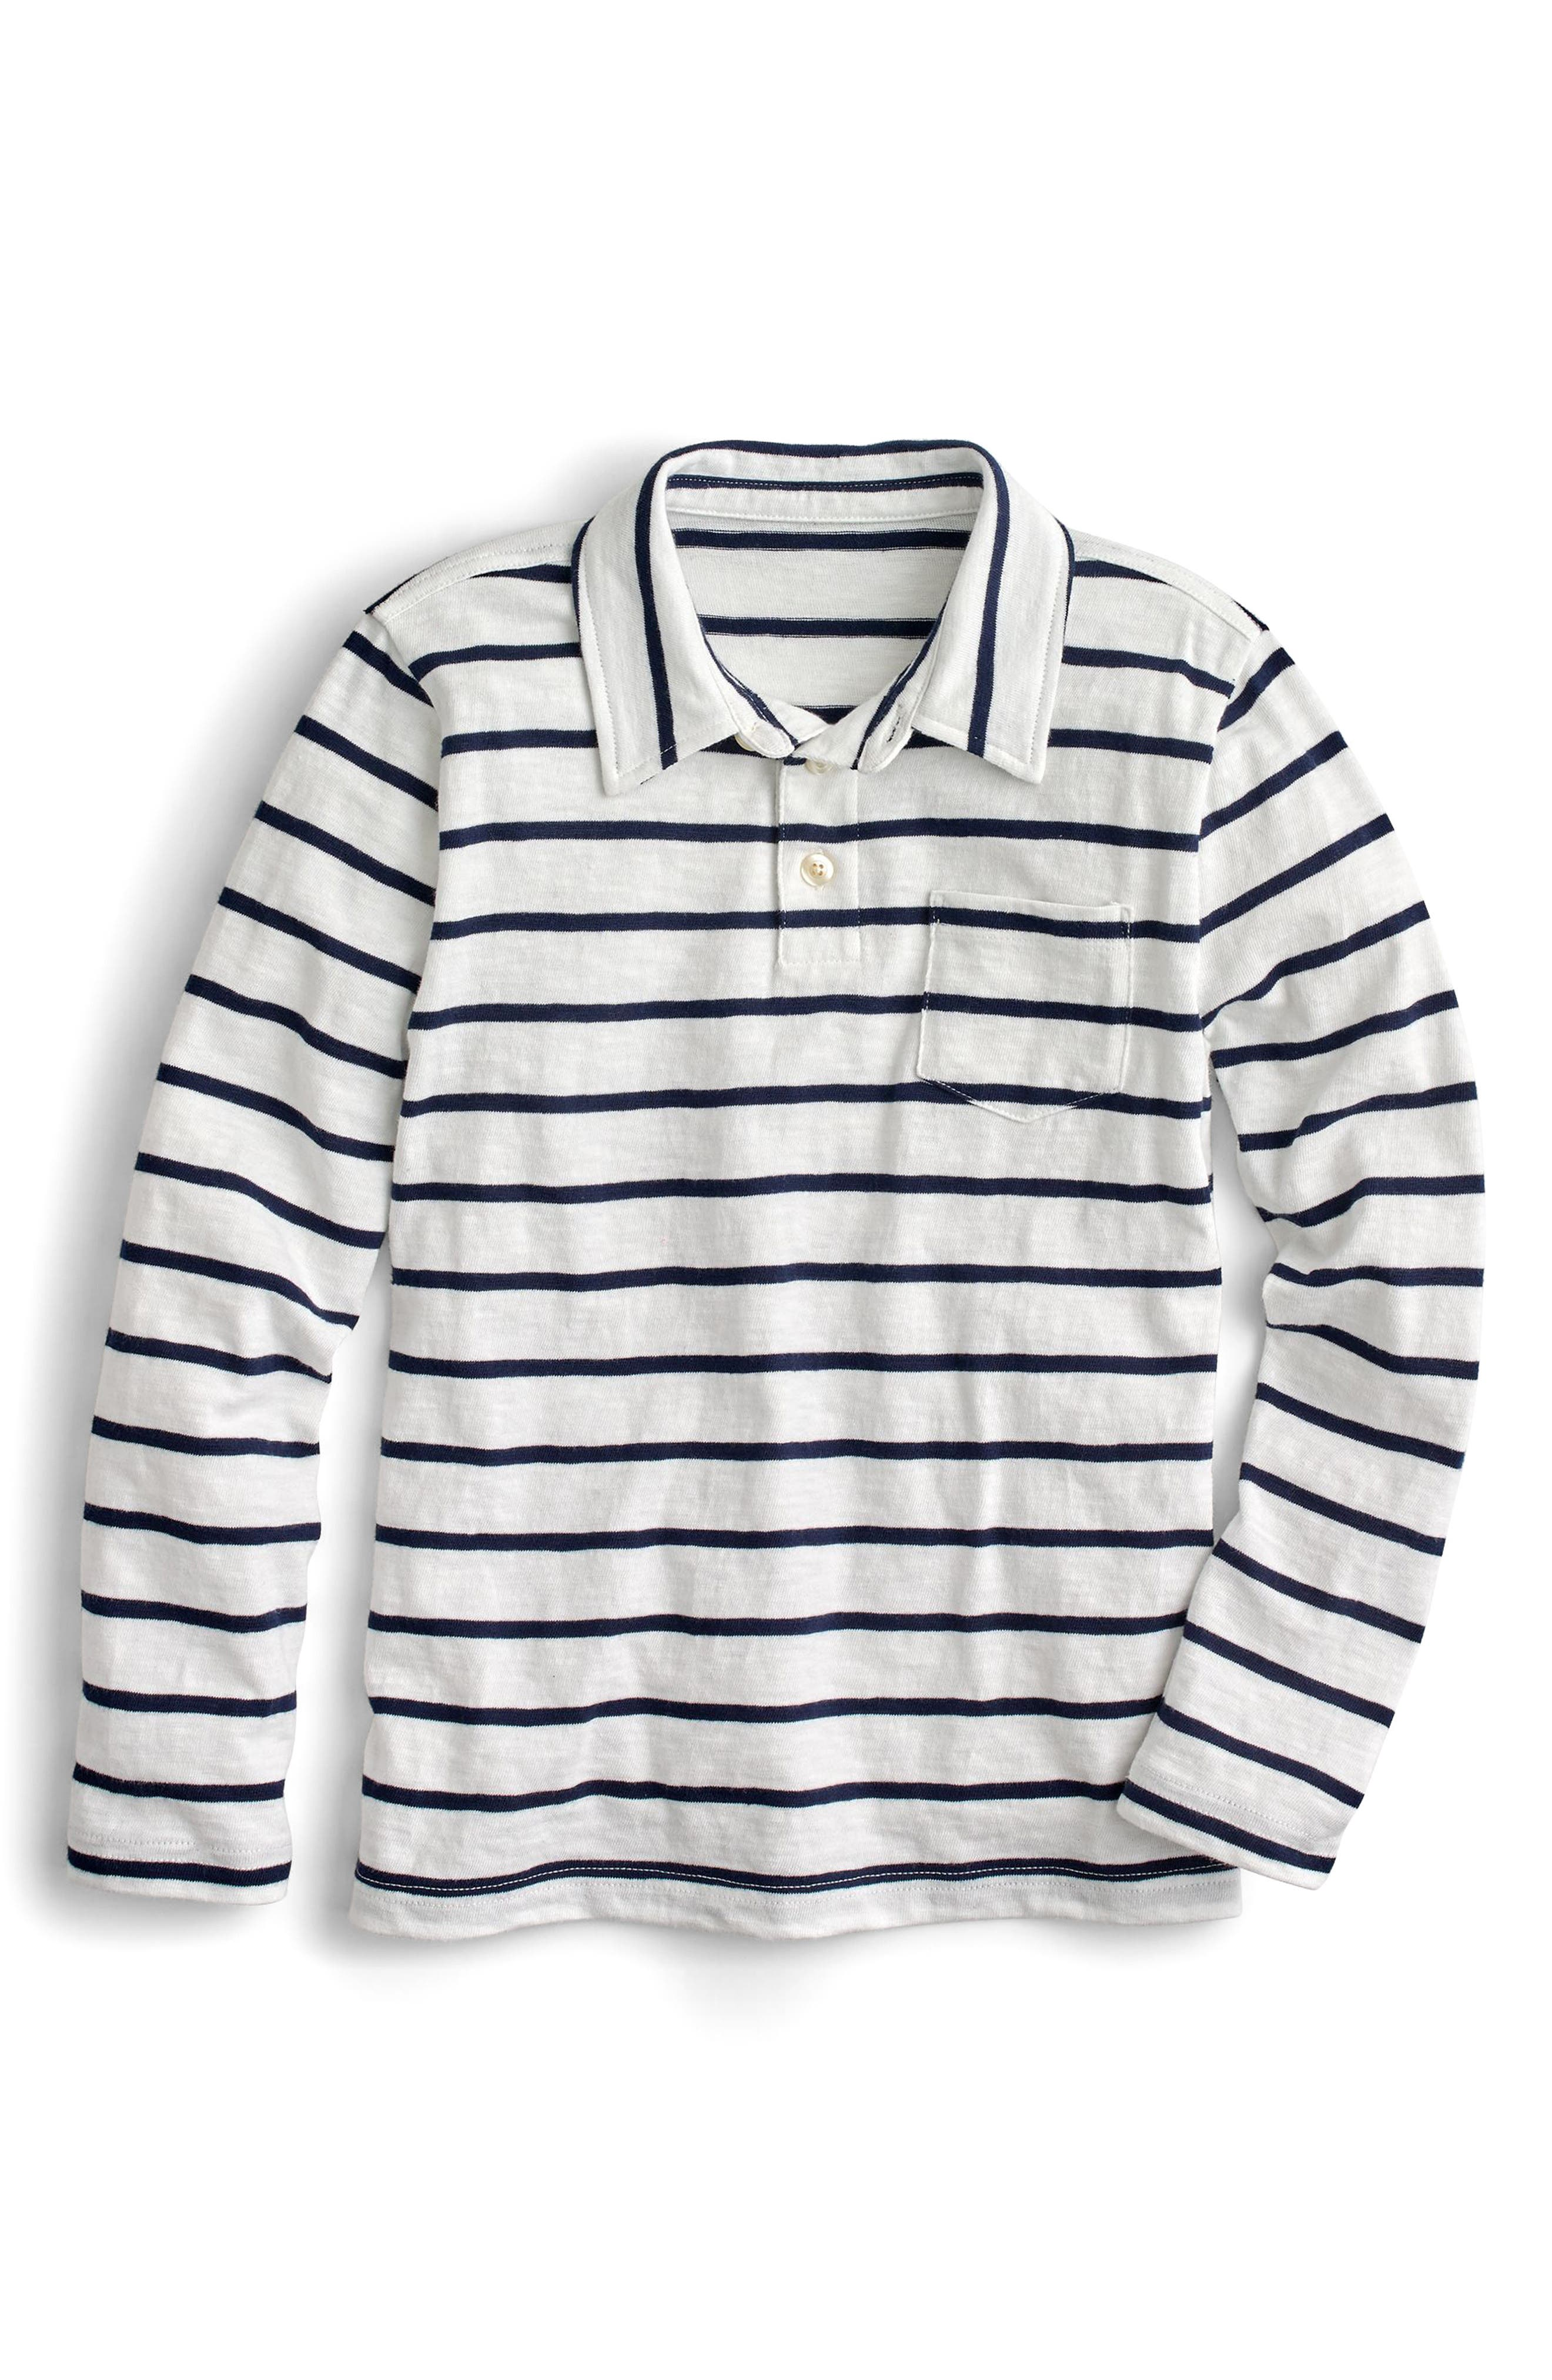 crewcuts by J.Crew Thin Stripe Long Sleeve Polo (Toddler Boys, Little Boys & Big Boys)